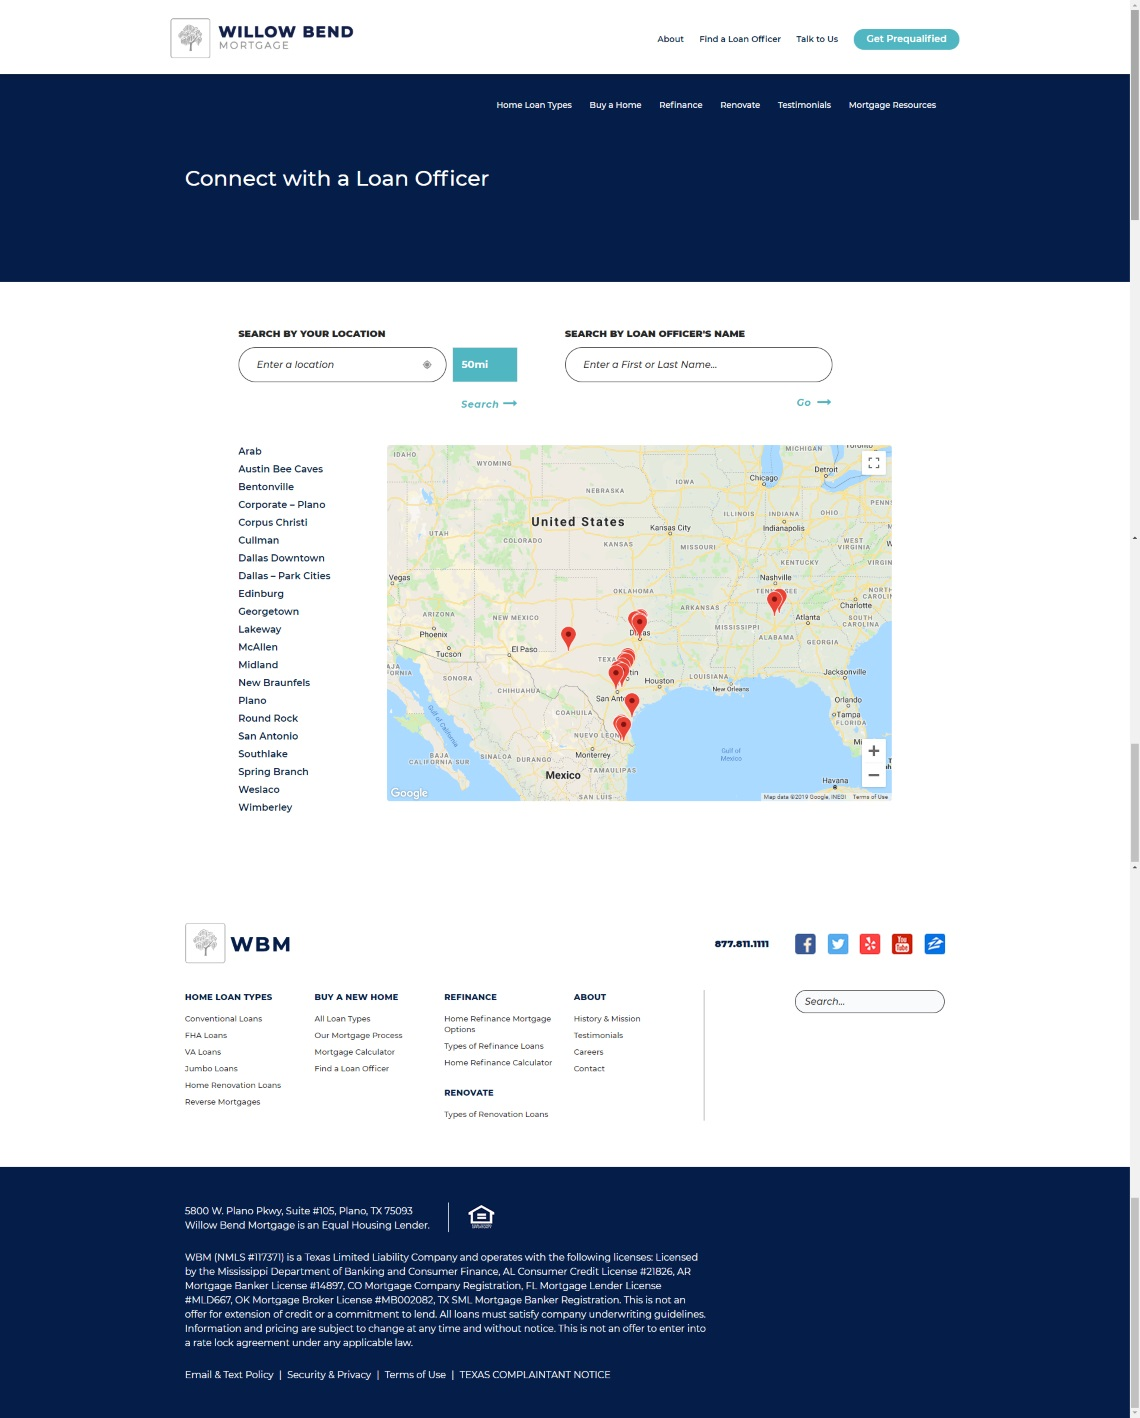 Willow Bend Mortgage Screenshot